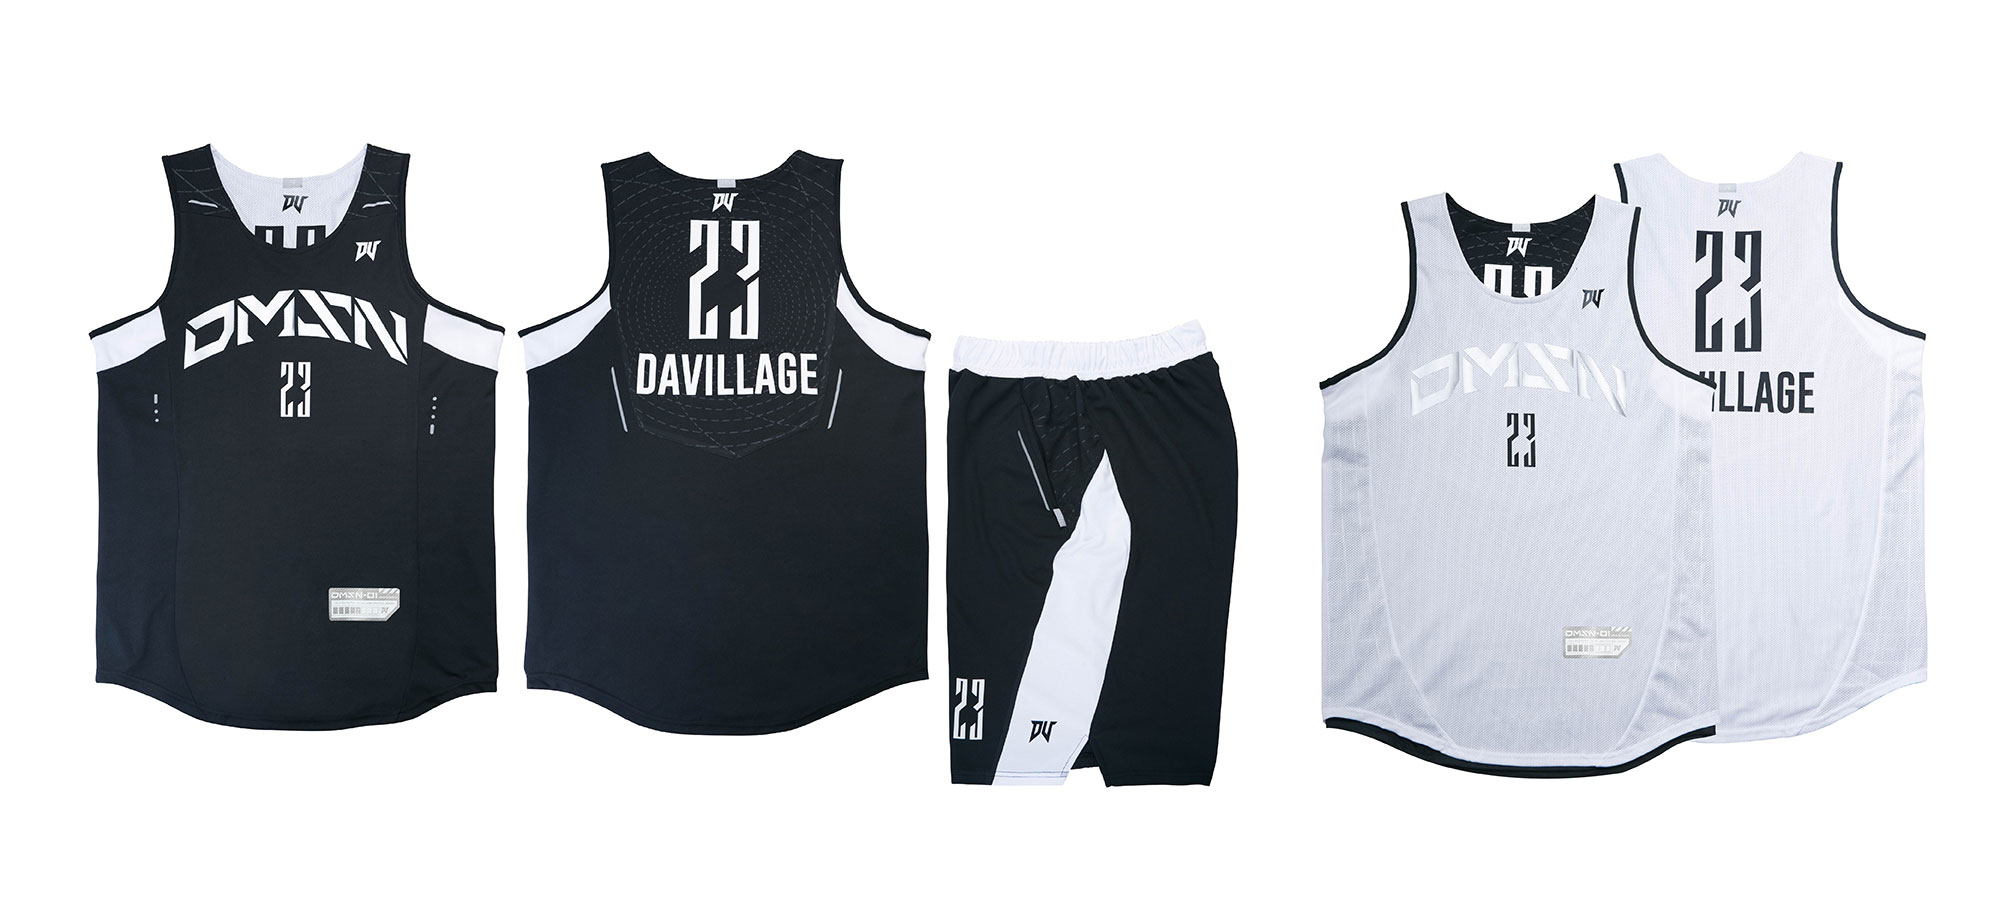 jersey-basketball-dimensional1-black-white-demo-product